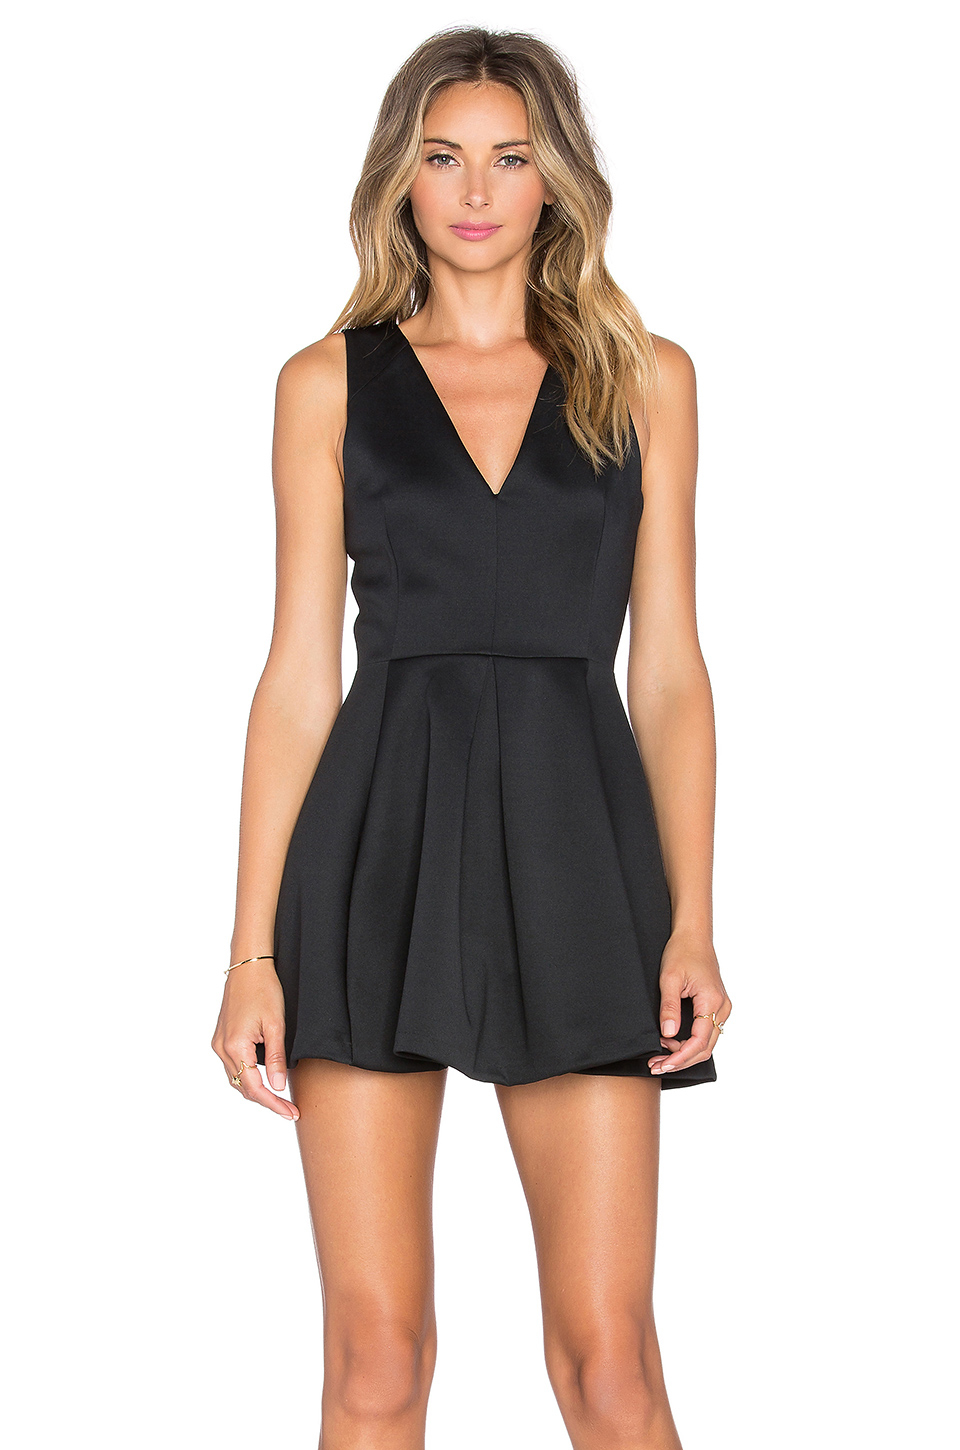 Lovers Friends Synthetic X Revolve Geneva Dress In Black